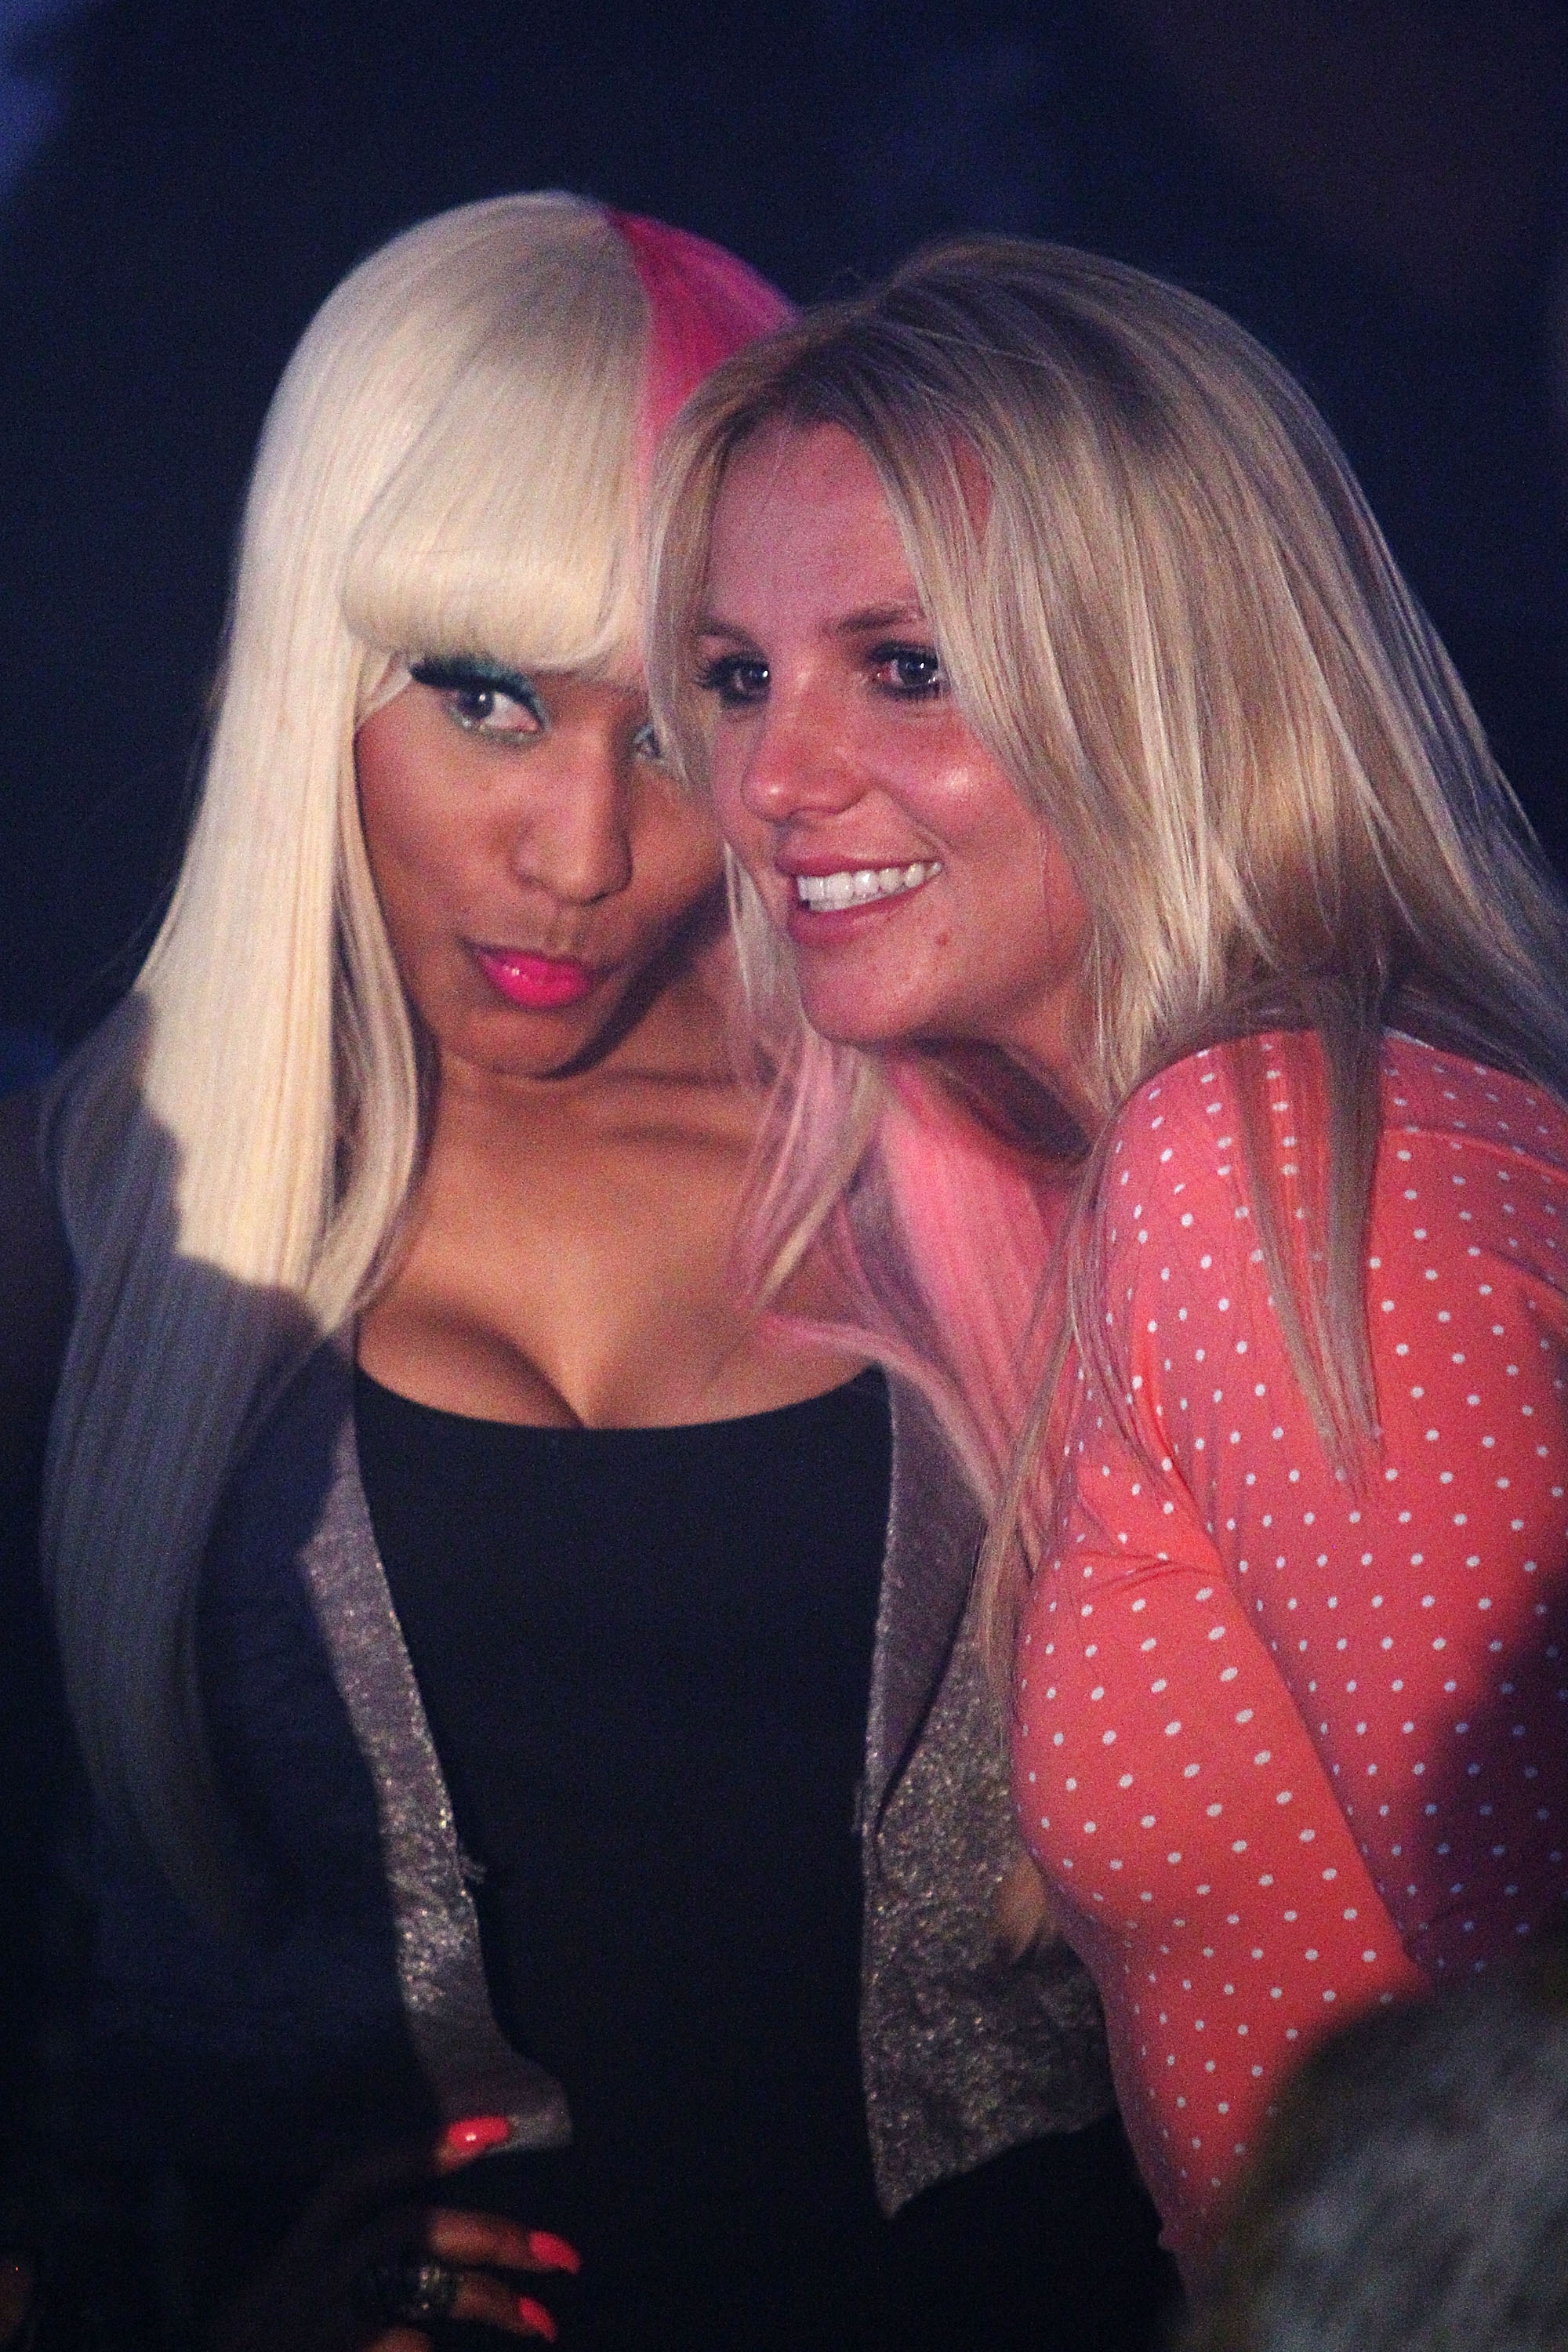 Nicki Minaj & Britney Spears